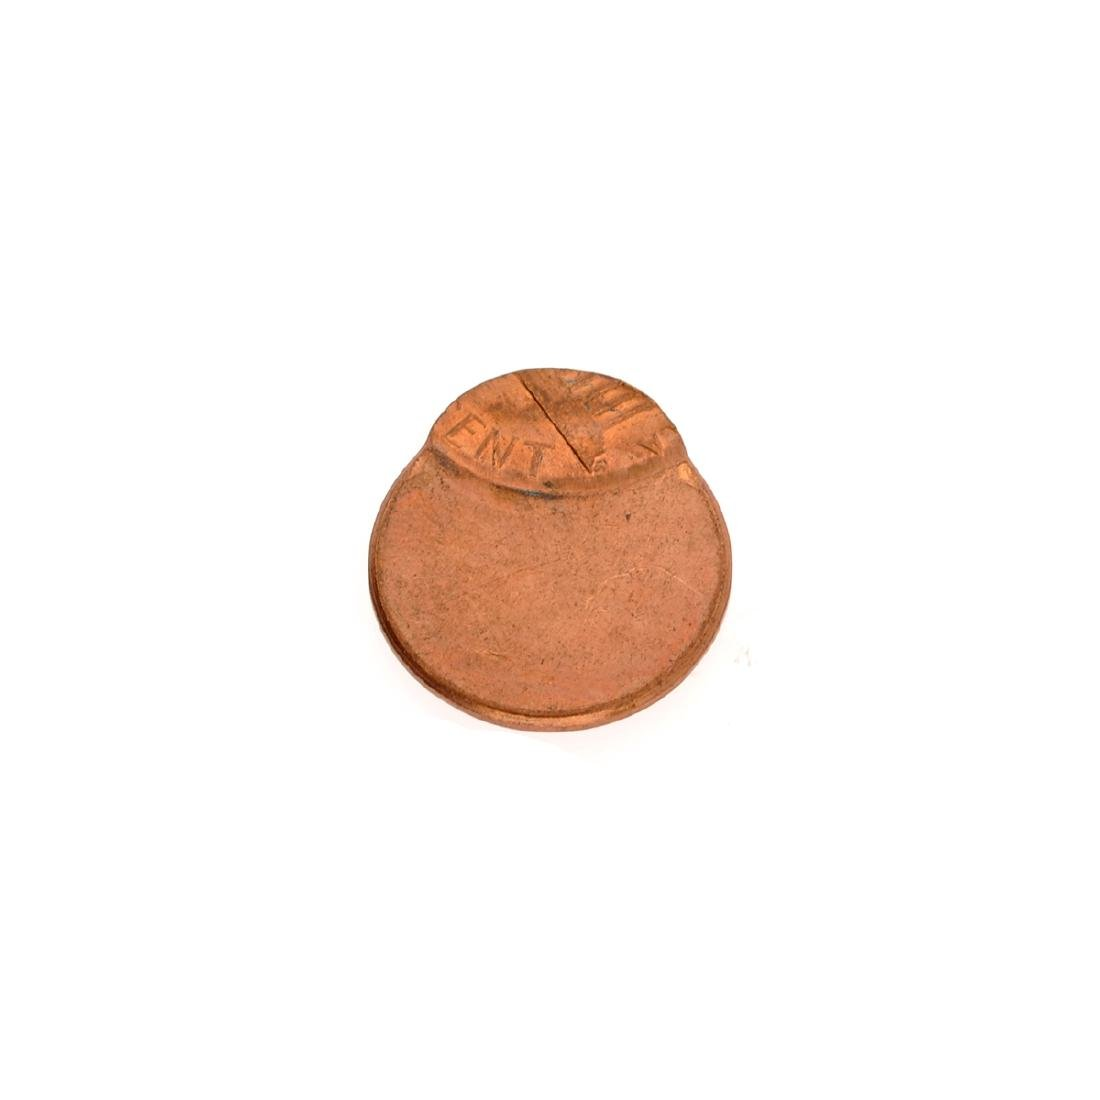 Mint U.S. Lincoln Off Center 1 Cent Planchet Coin - 2